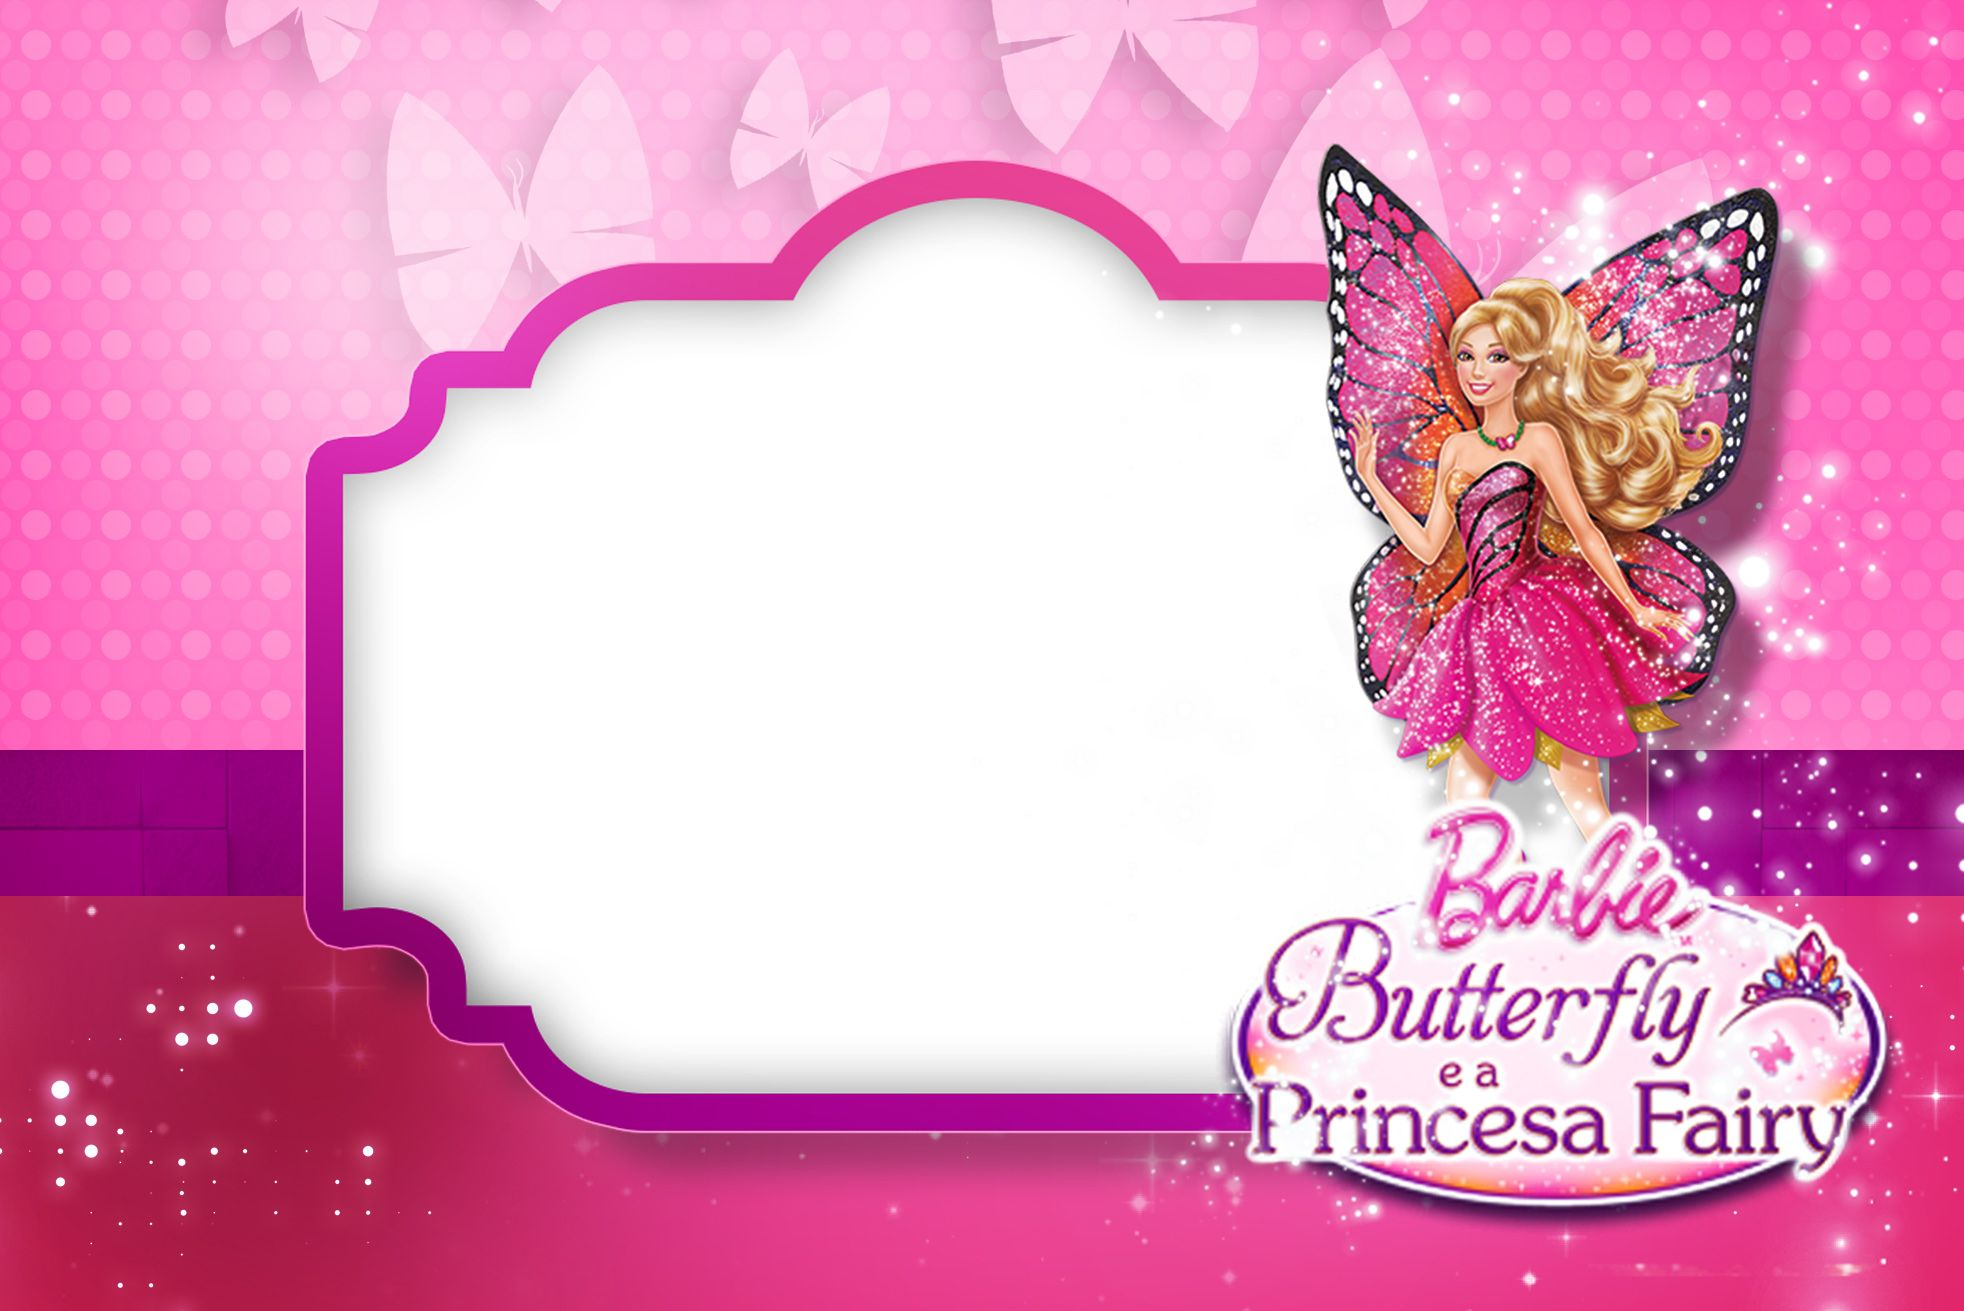 Download Wallpaper Butterfly Barbie - 49bc8cbc65615749c6836c167a4513ab  Gallery_361213.jpg